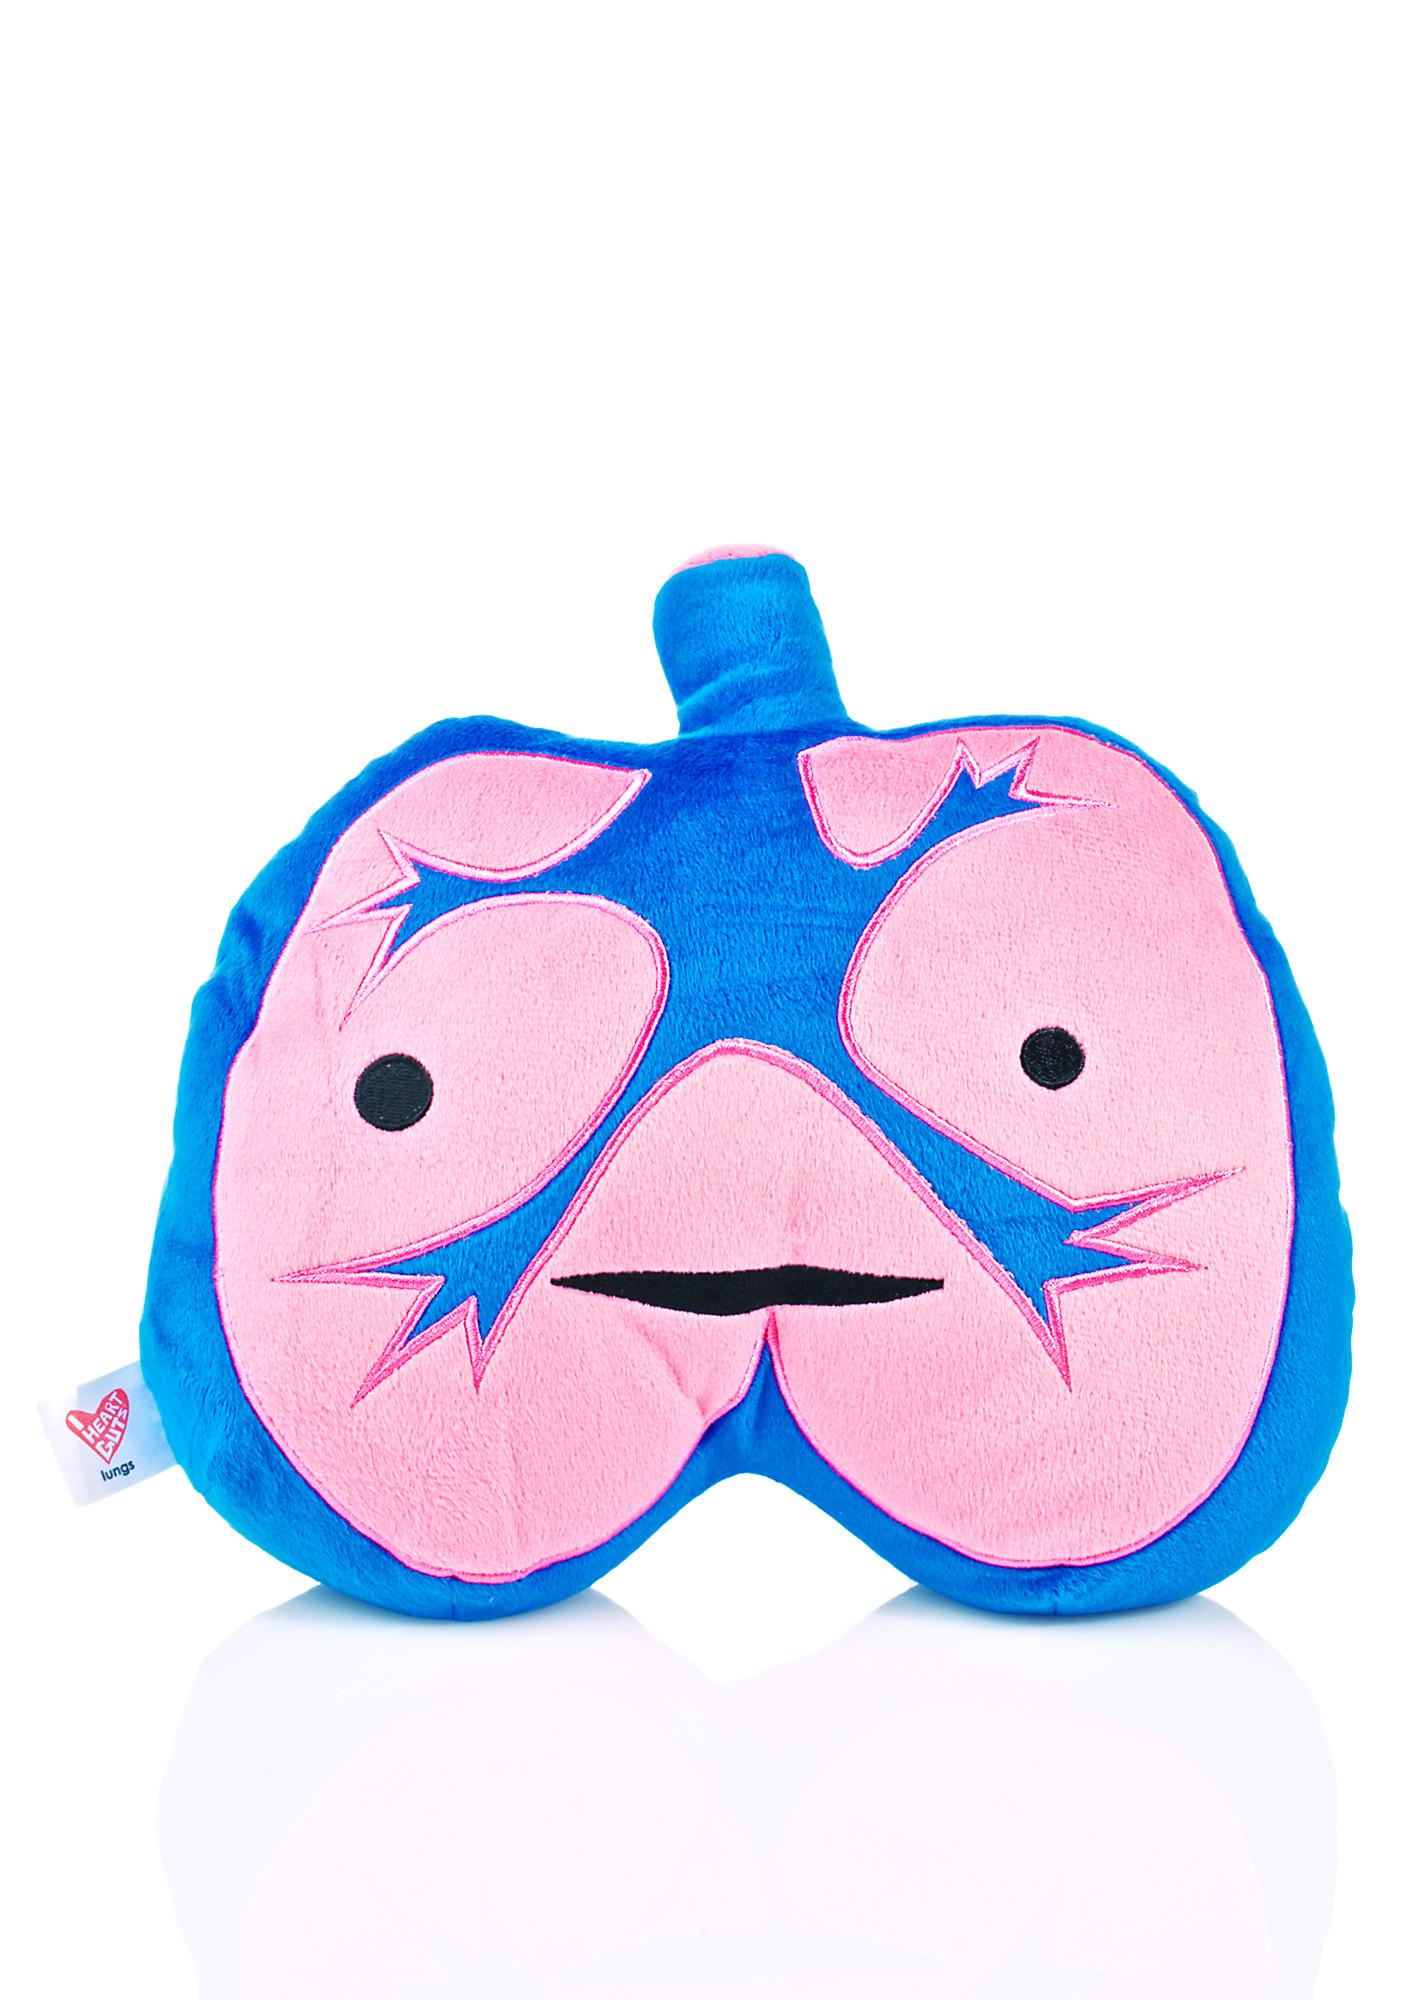 I Heart Guts Lungs Plushie